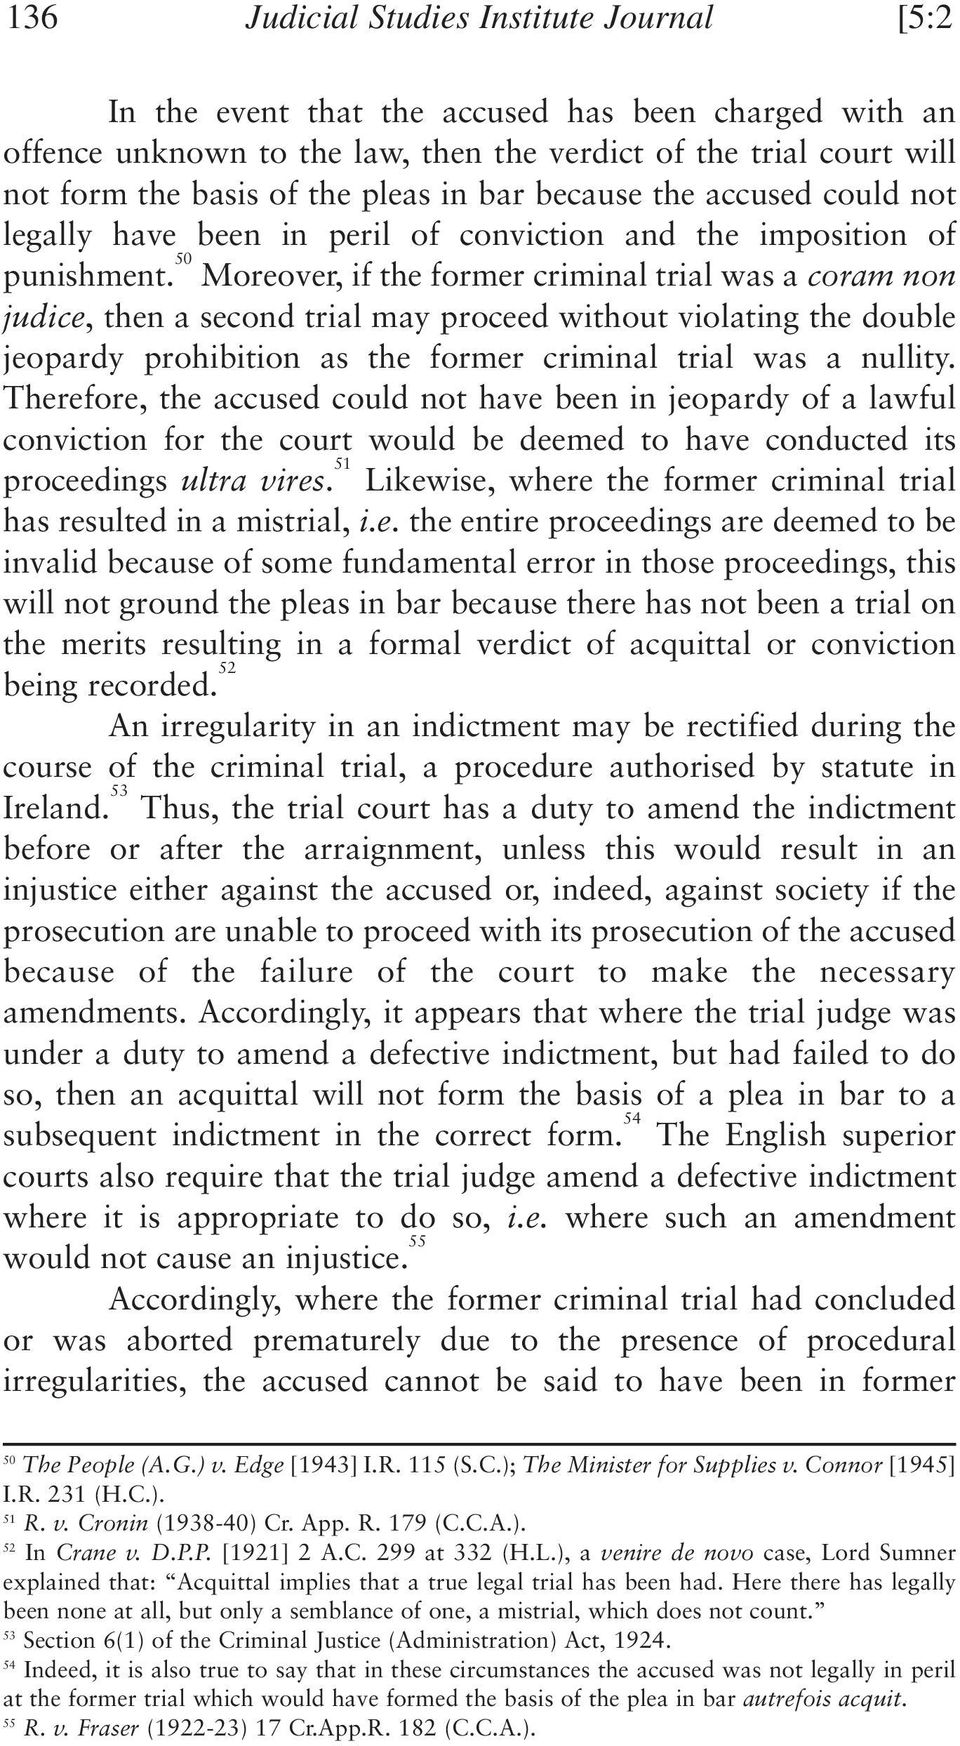 50 Moreover, if the former criminal trial was a coram non judice, then a second trial may proceed without violating the double jeopardy prohibition as the former criminal trial was a nullity.